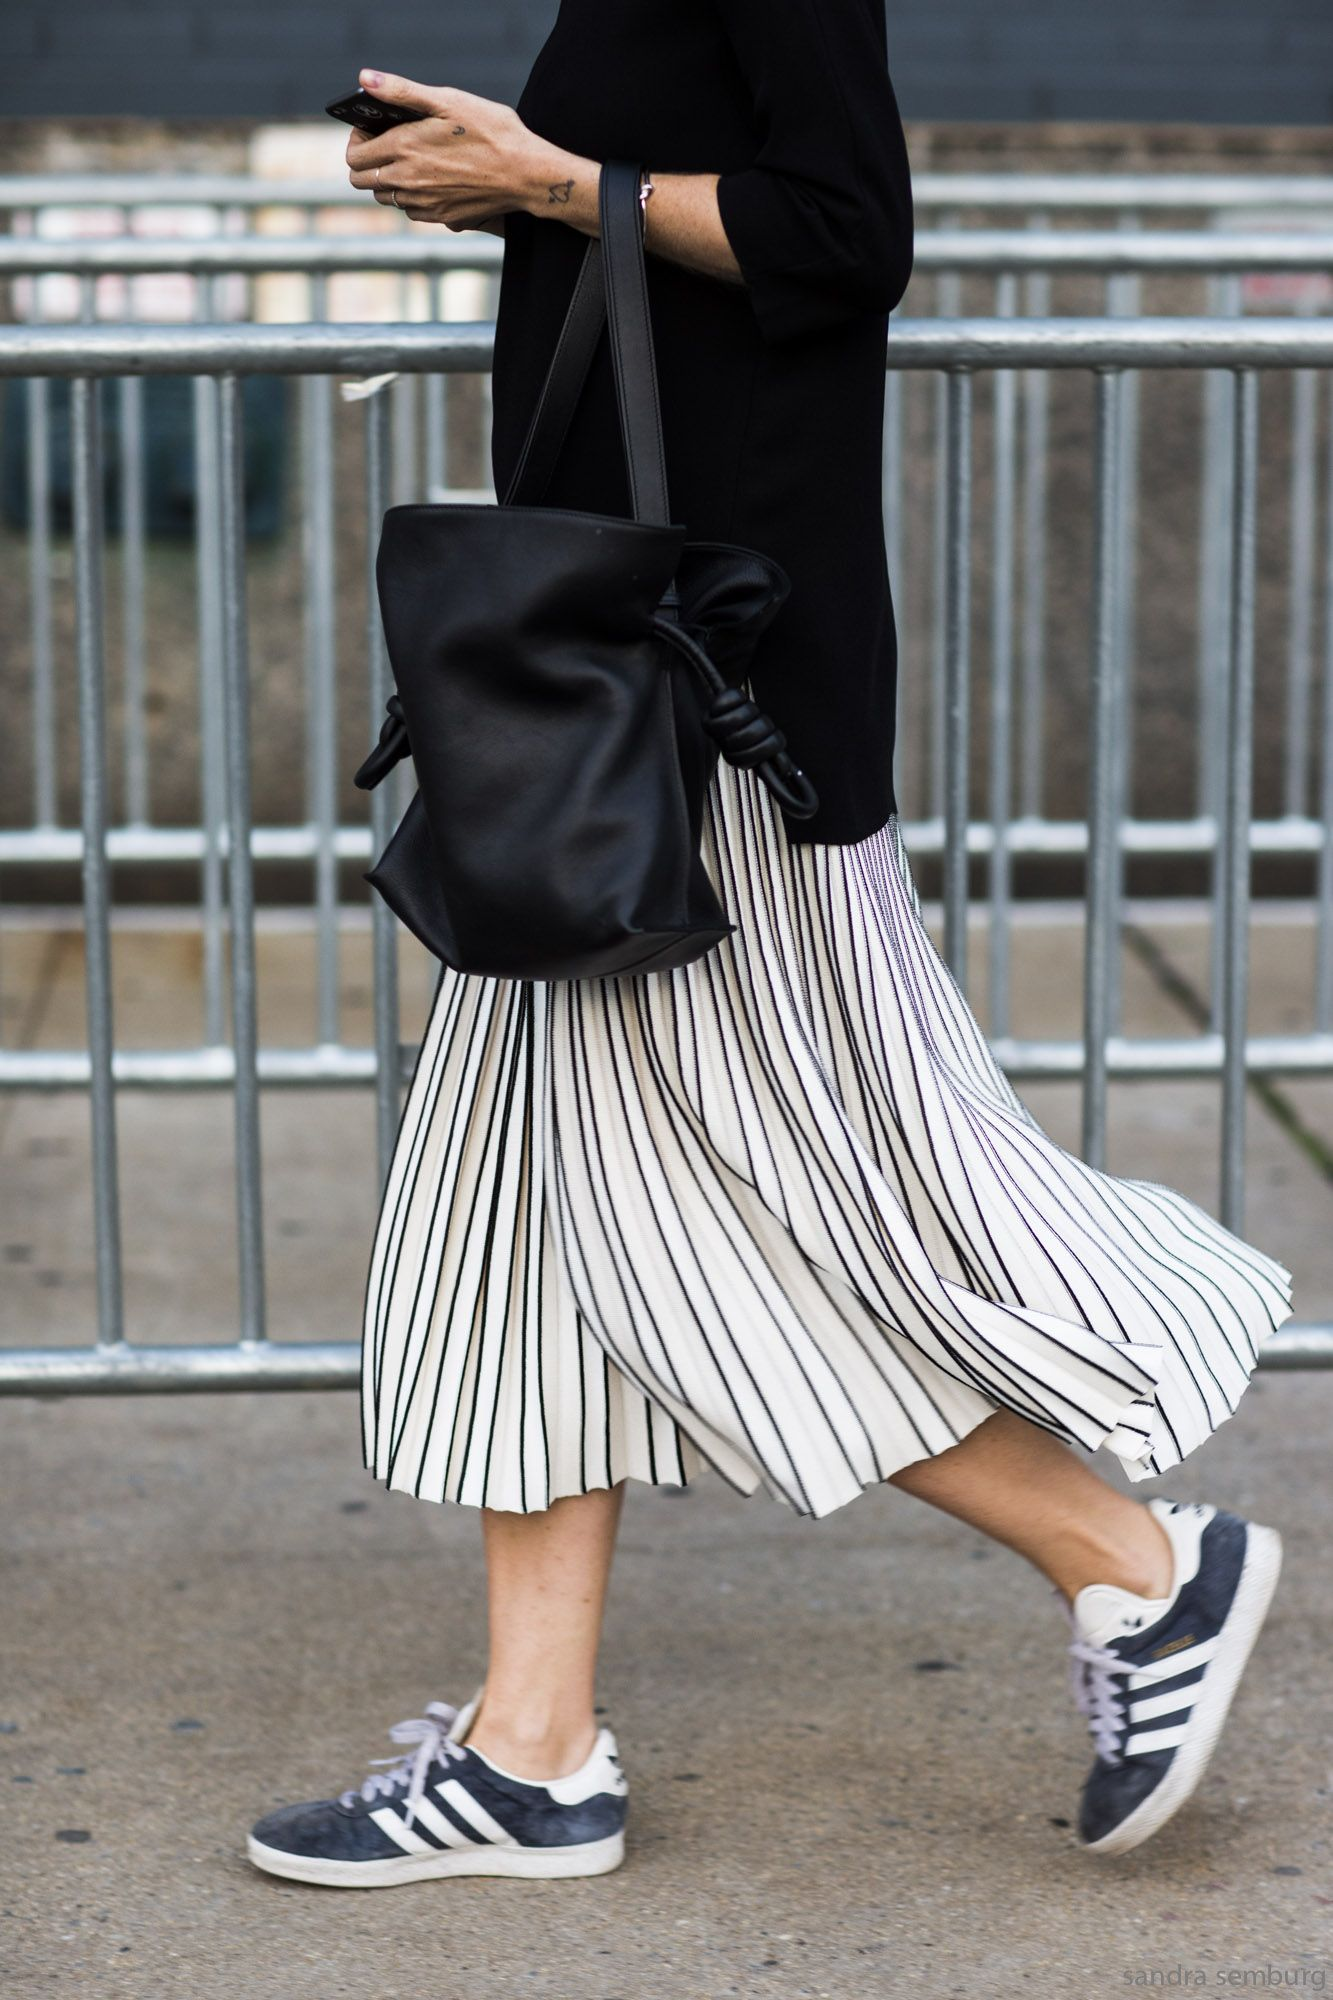 51944d75d380 Black jumper, stripe midi skirt, black bag + blue Adidas Gazelle trainers |  @styleminimalism